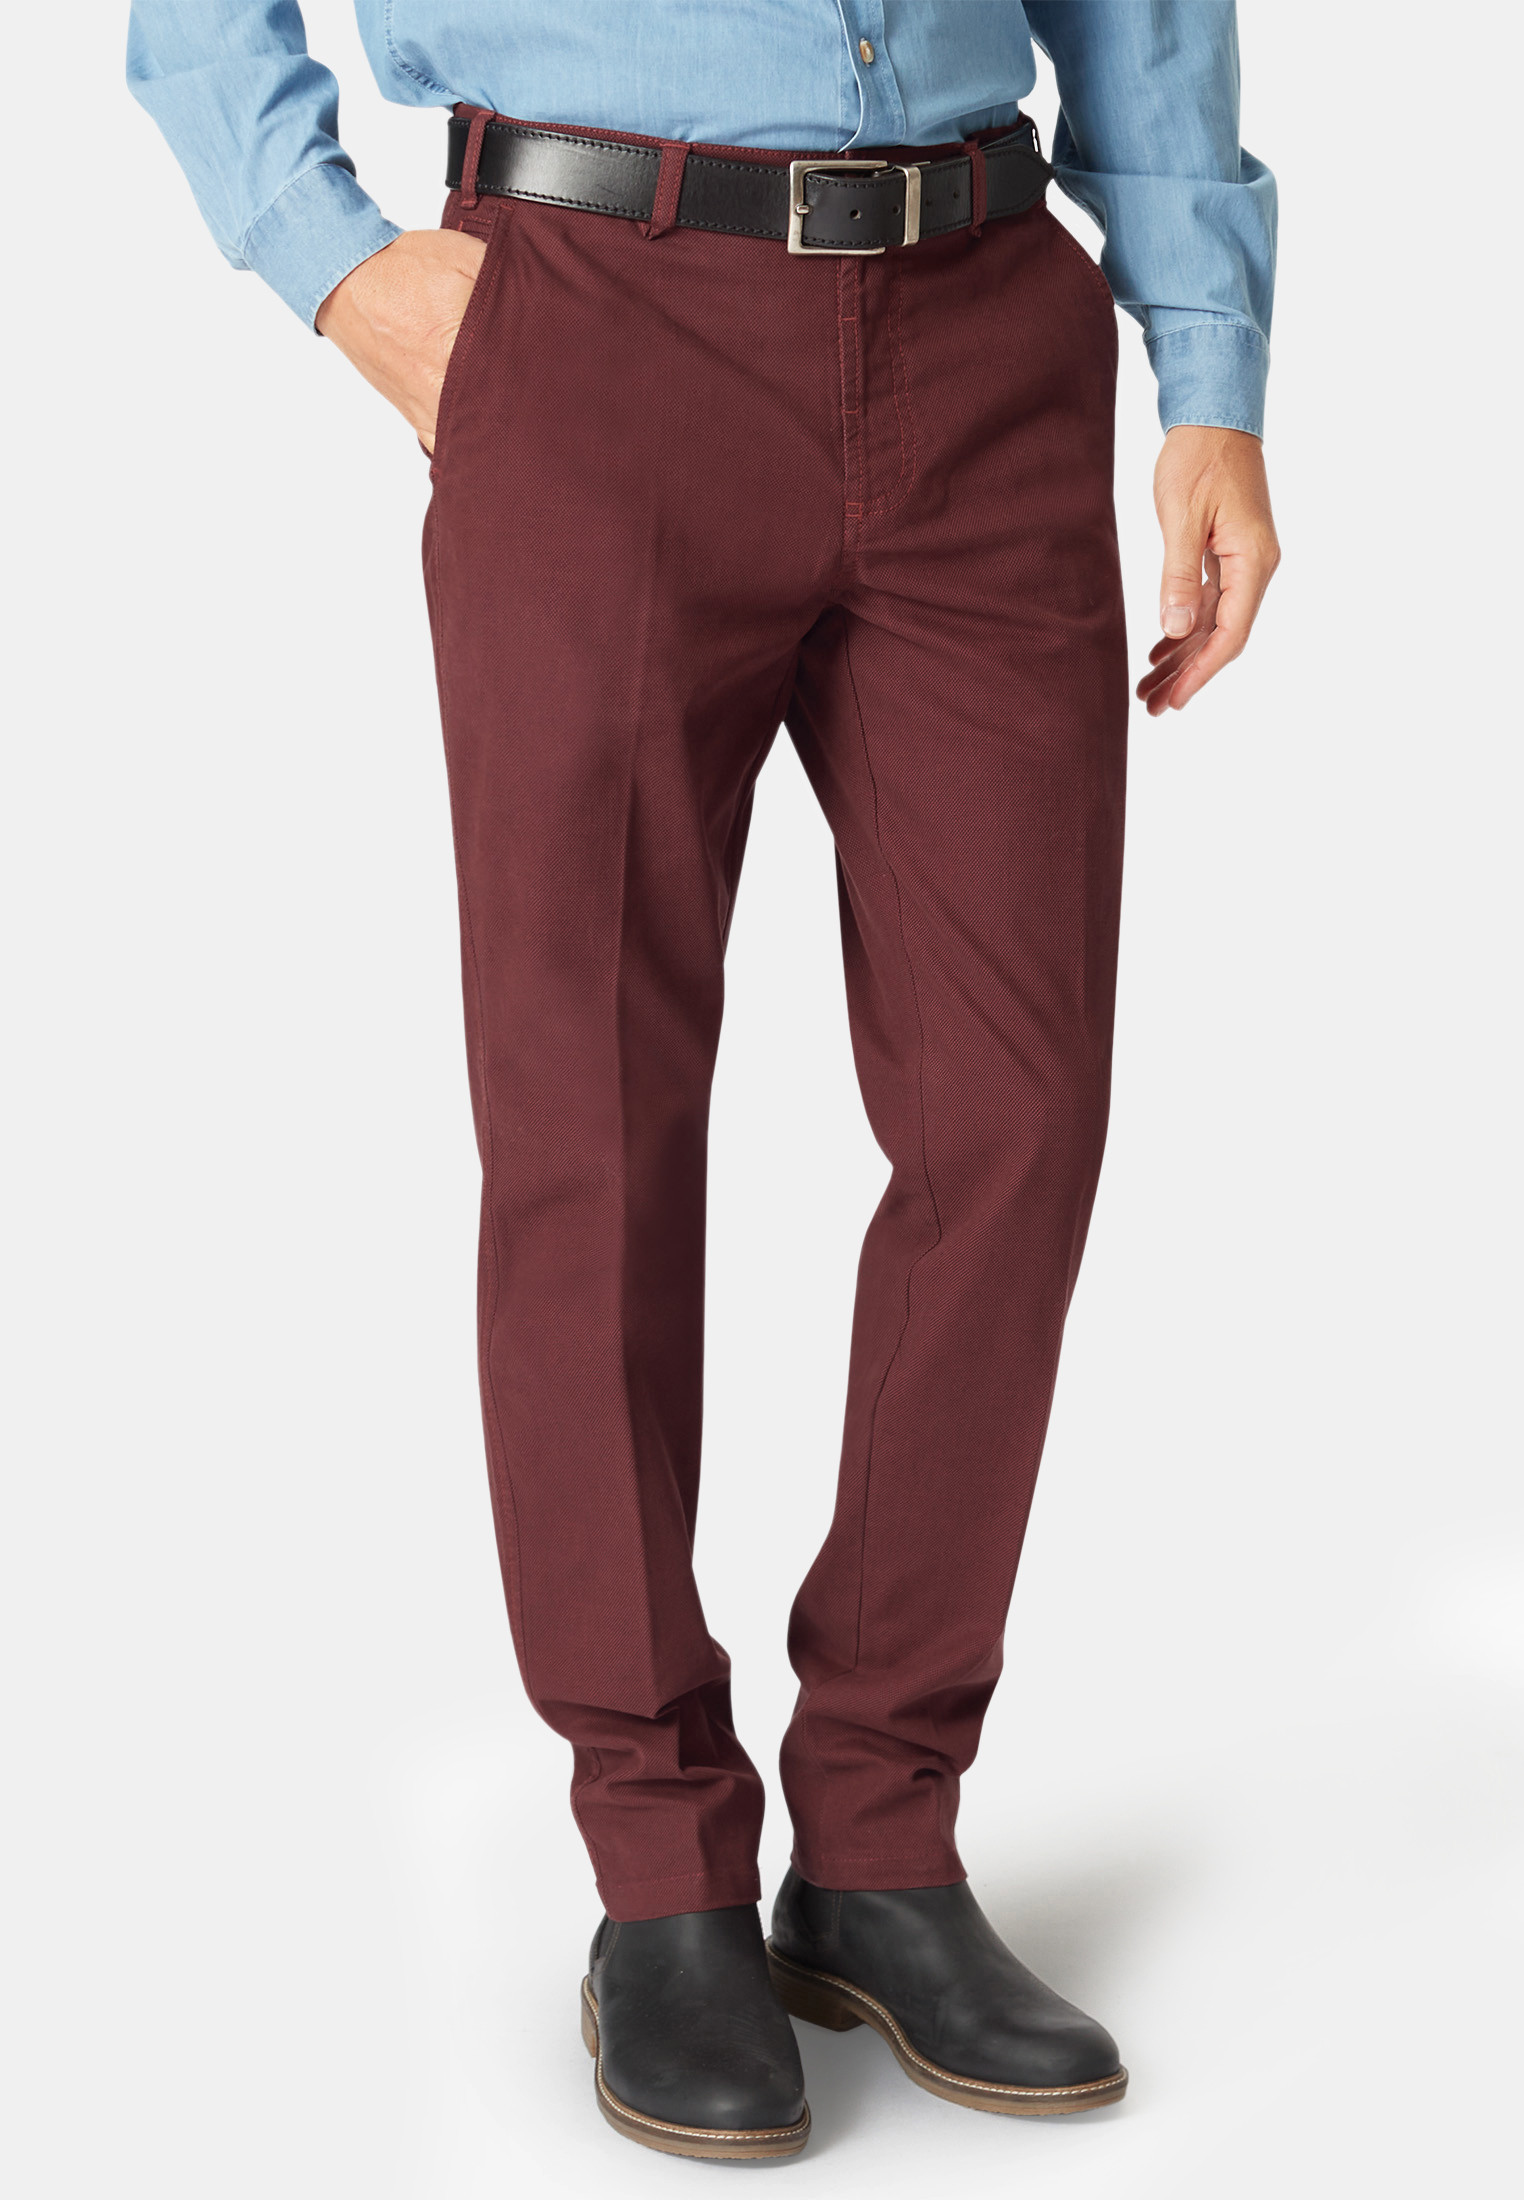 Havers Ruby Micro Dot Casual Trouser